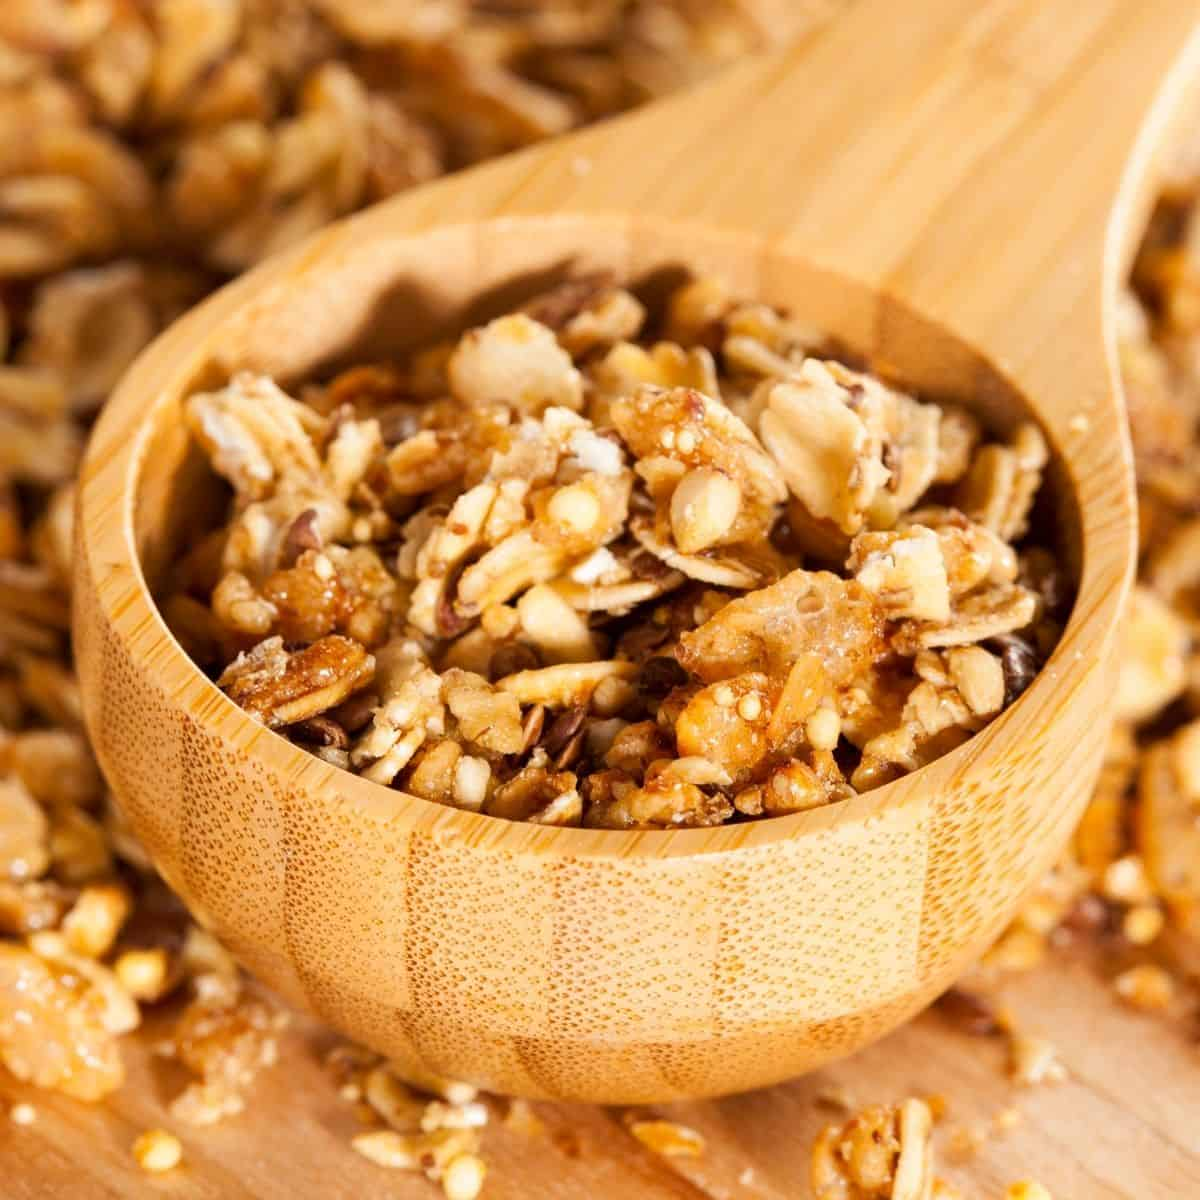 Keto Cereal with nuts and seeds